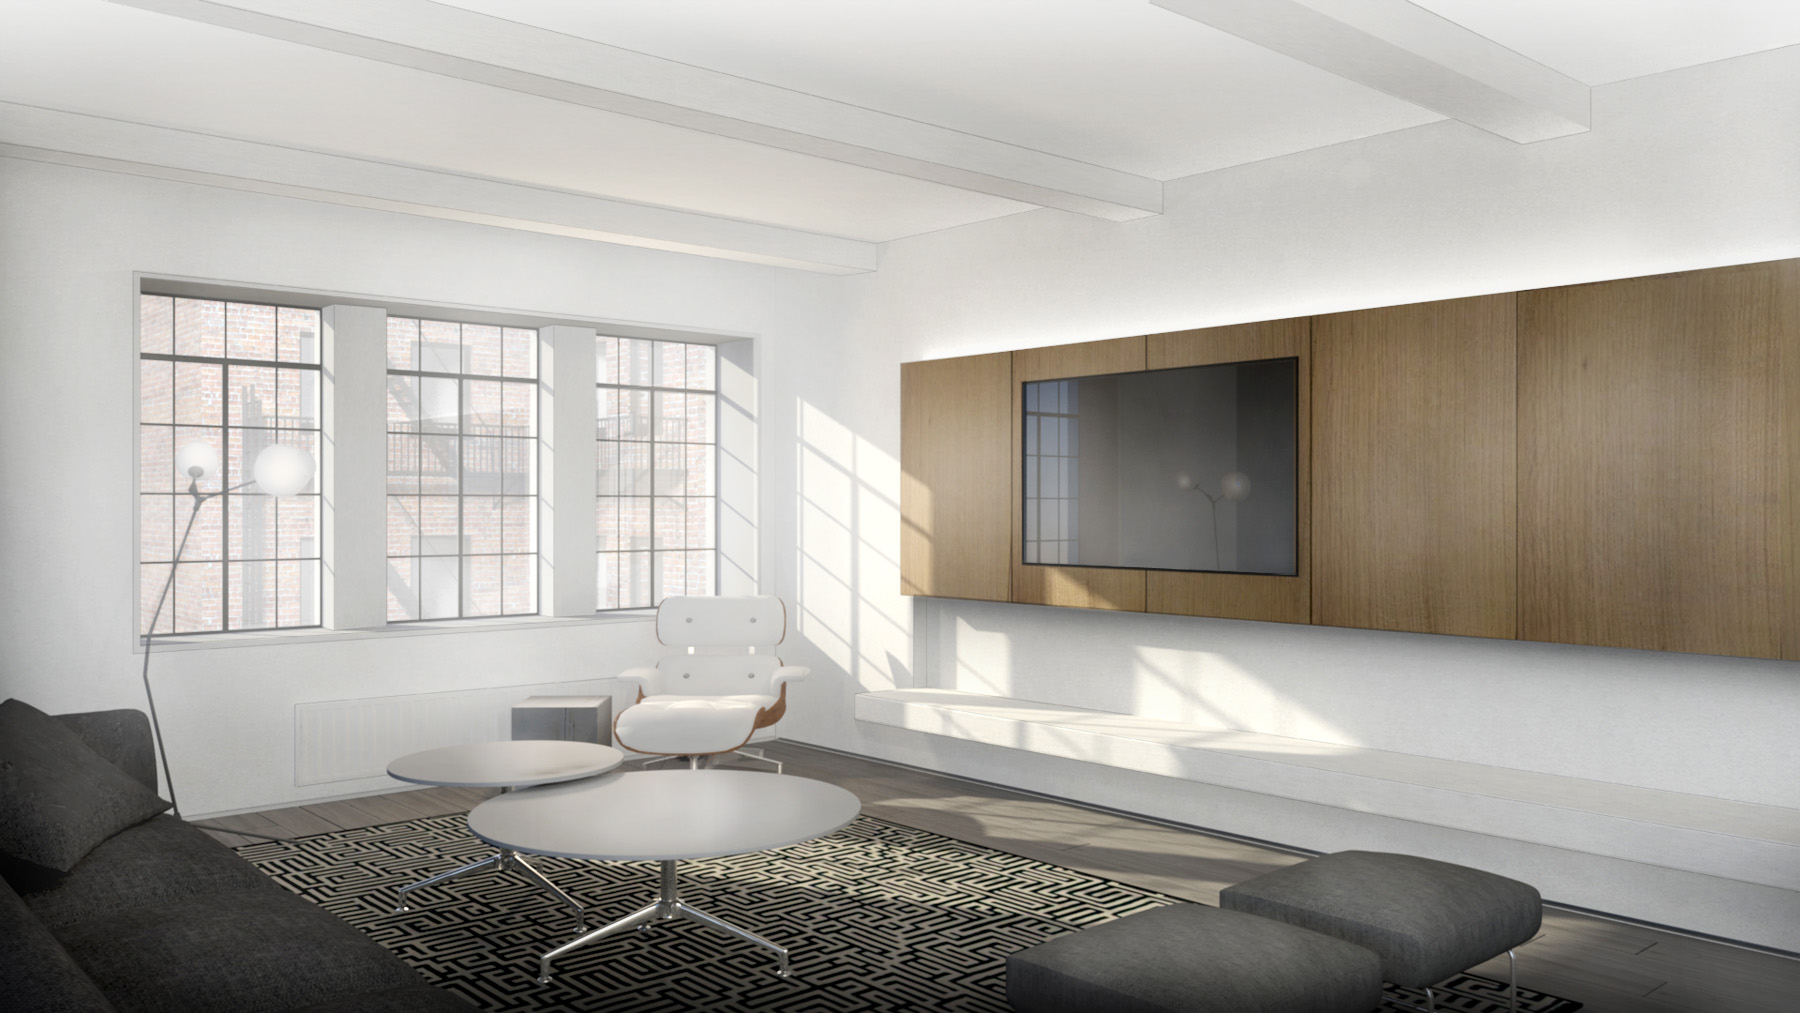 Stadt Architecture, Upper West Side Apartment II, Oak, TV, Floating Bench, Kitterman, STADT, nyc architects, ny apartment renovation